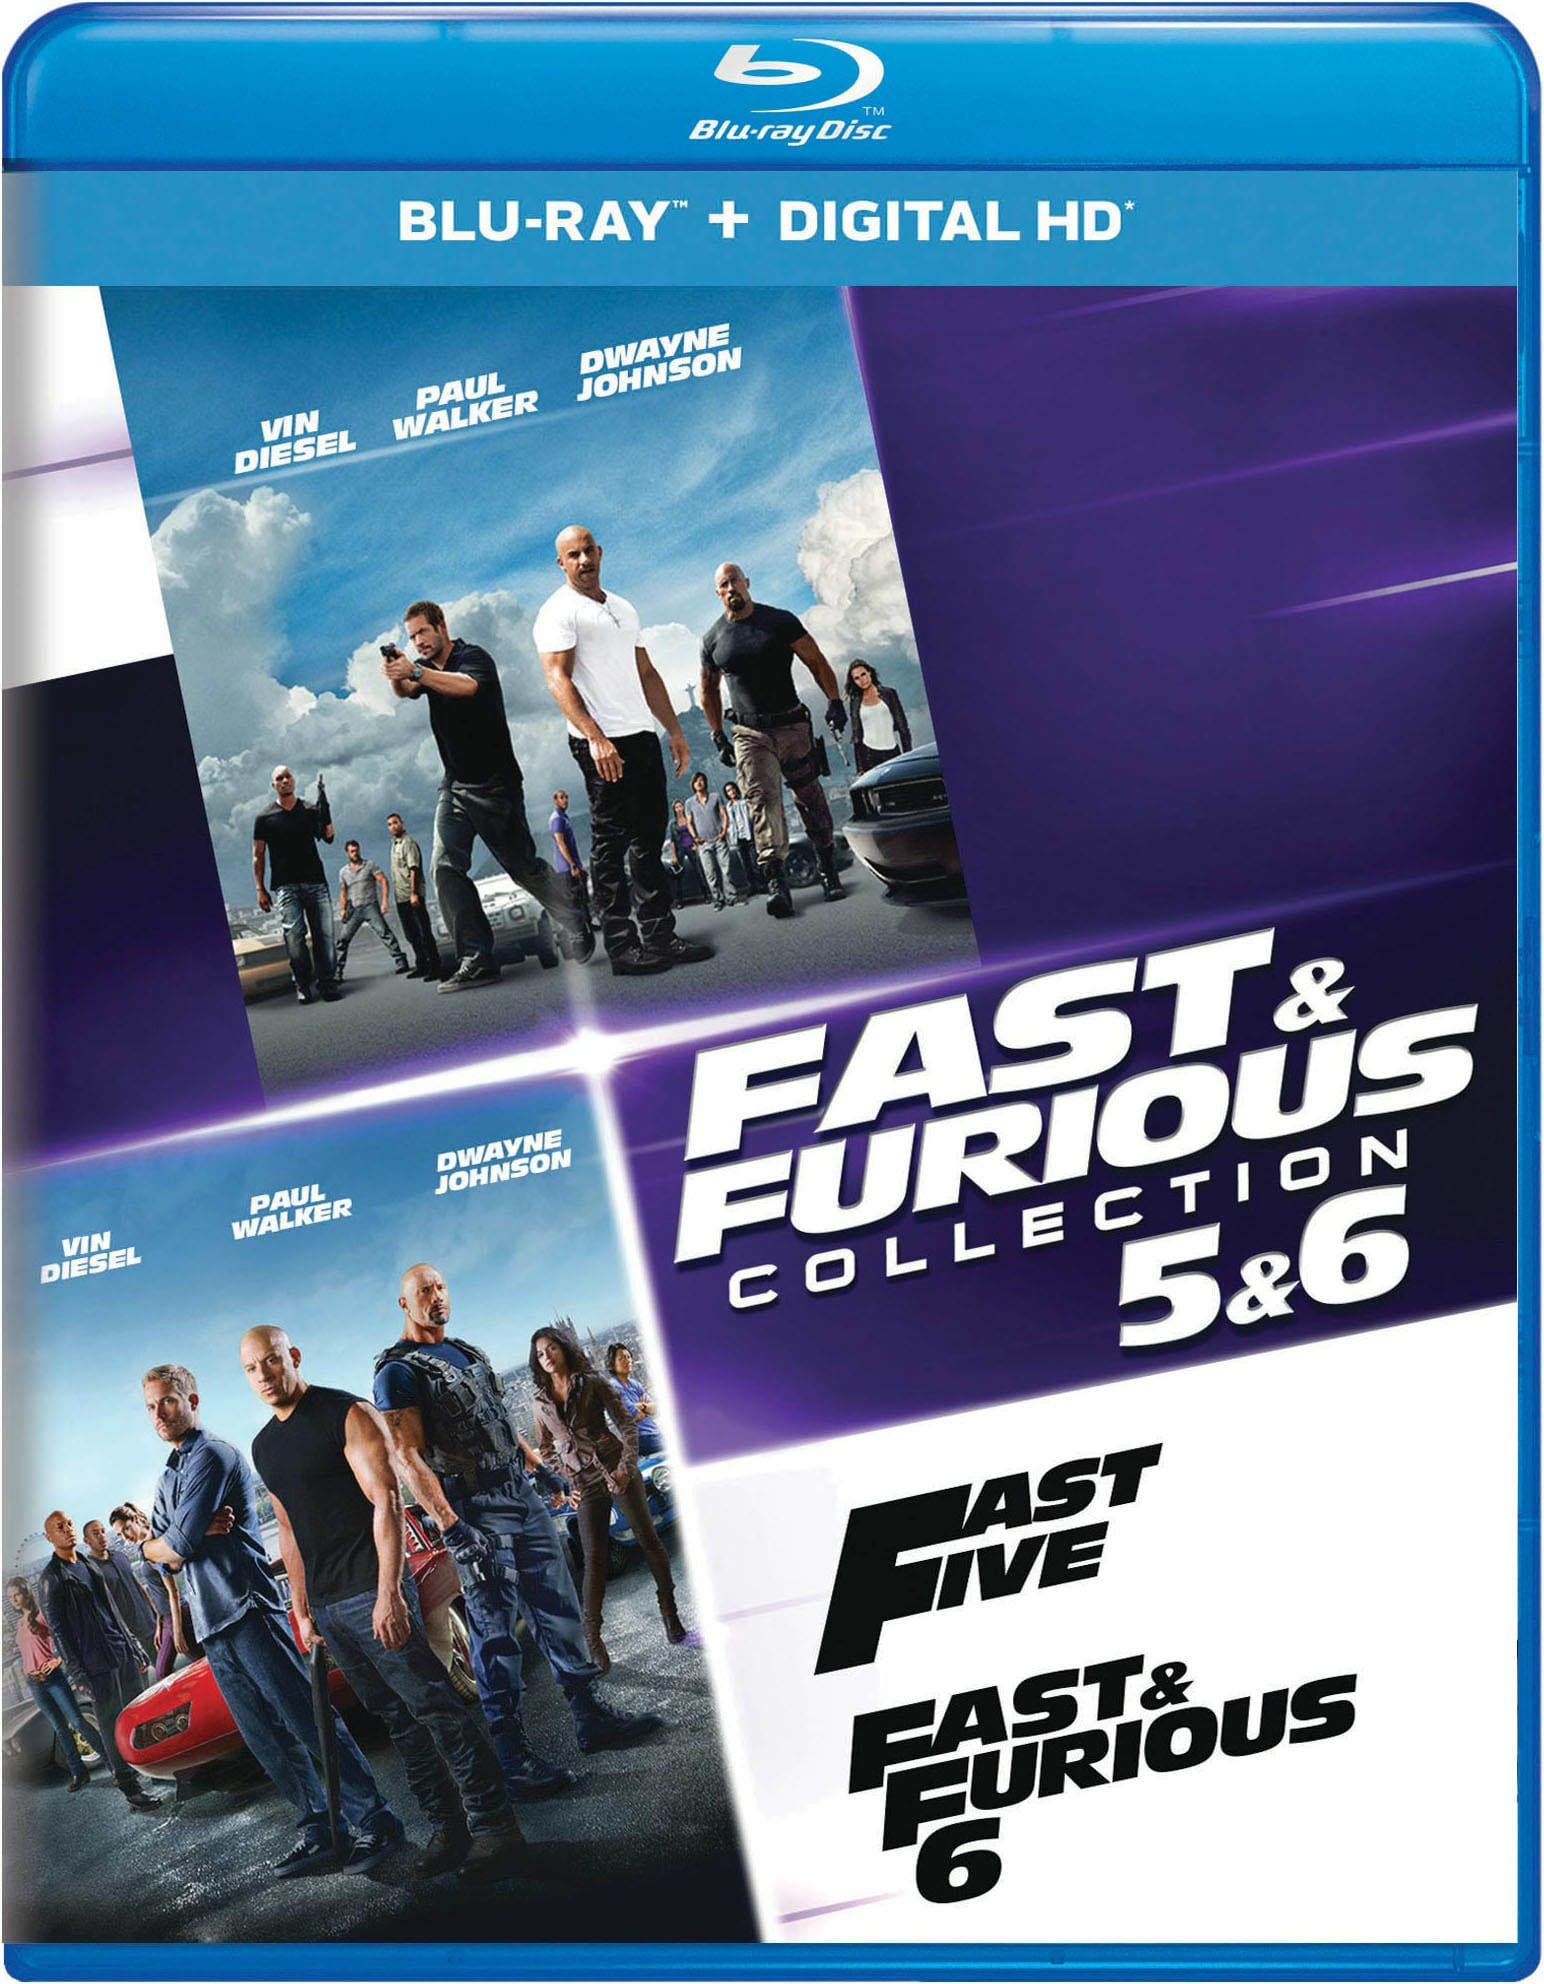 Fast & Furious Collection: 5 & 6 [Blu-ray]